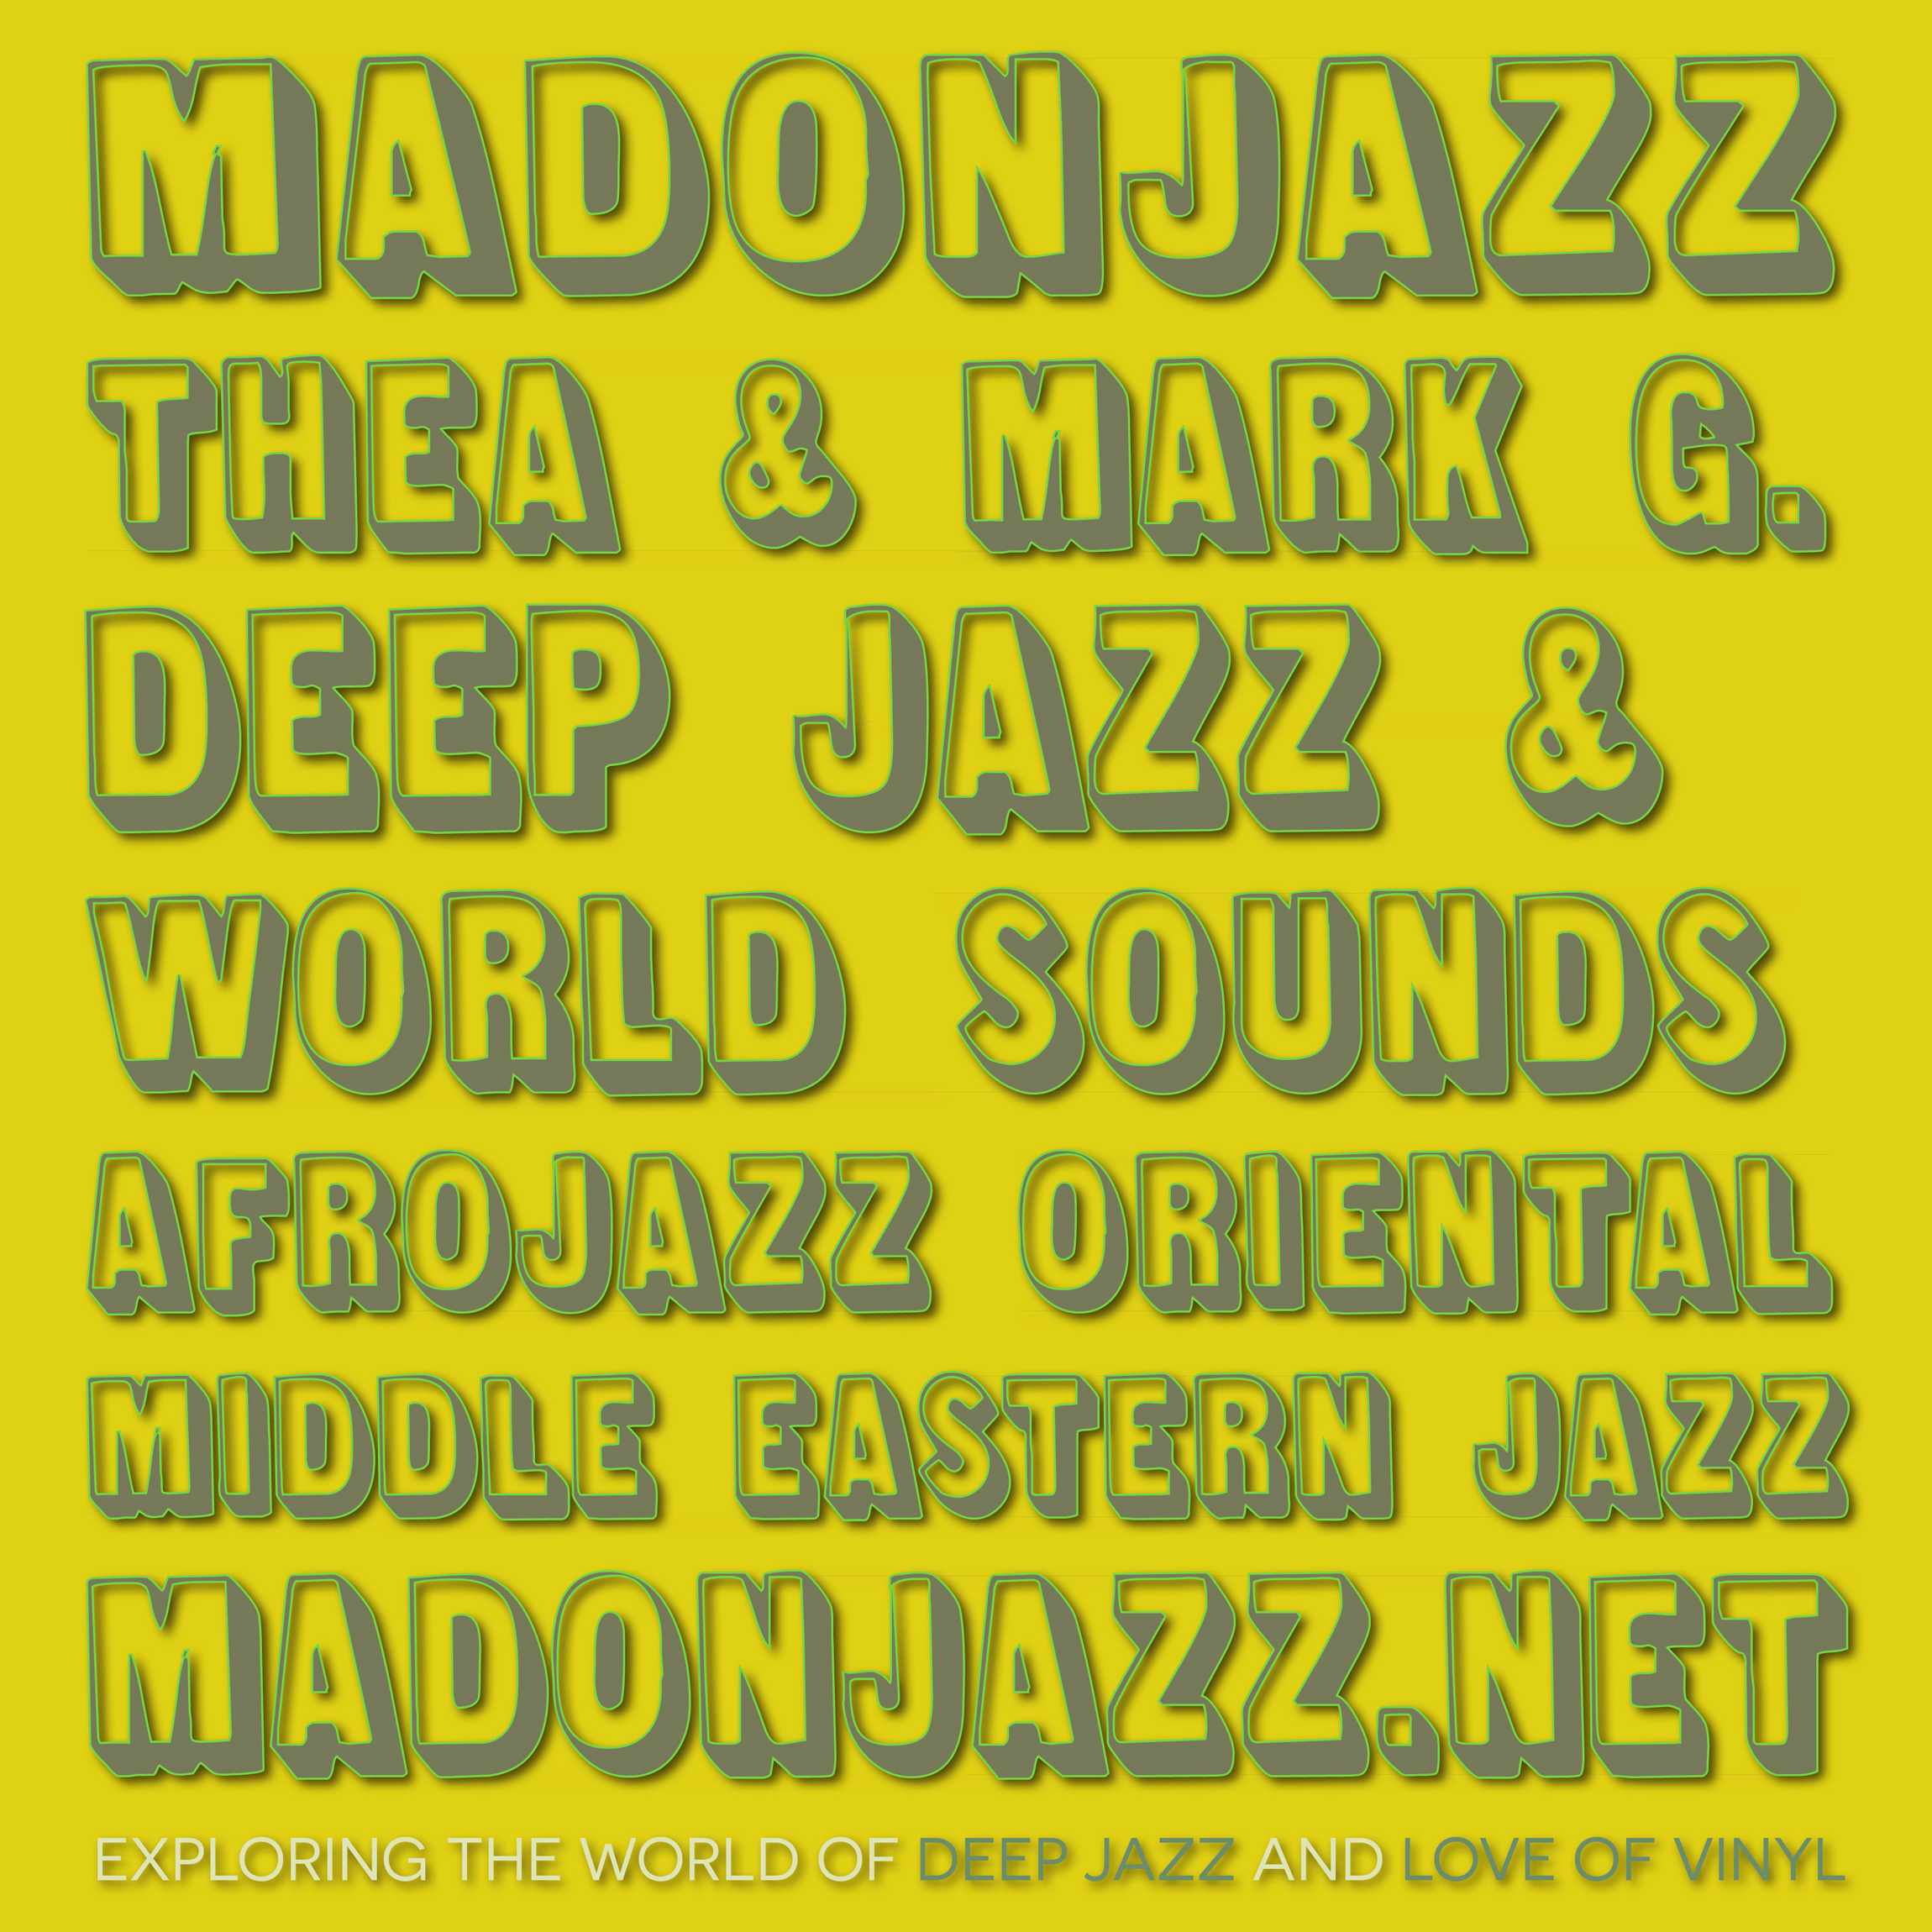 MADONJAZZ: Deep Jazz , Afro & Middle Eastern Jazz Sounds w/ Thea & Mark G.